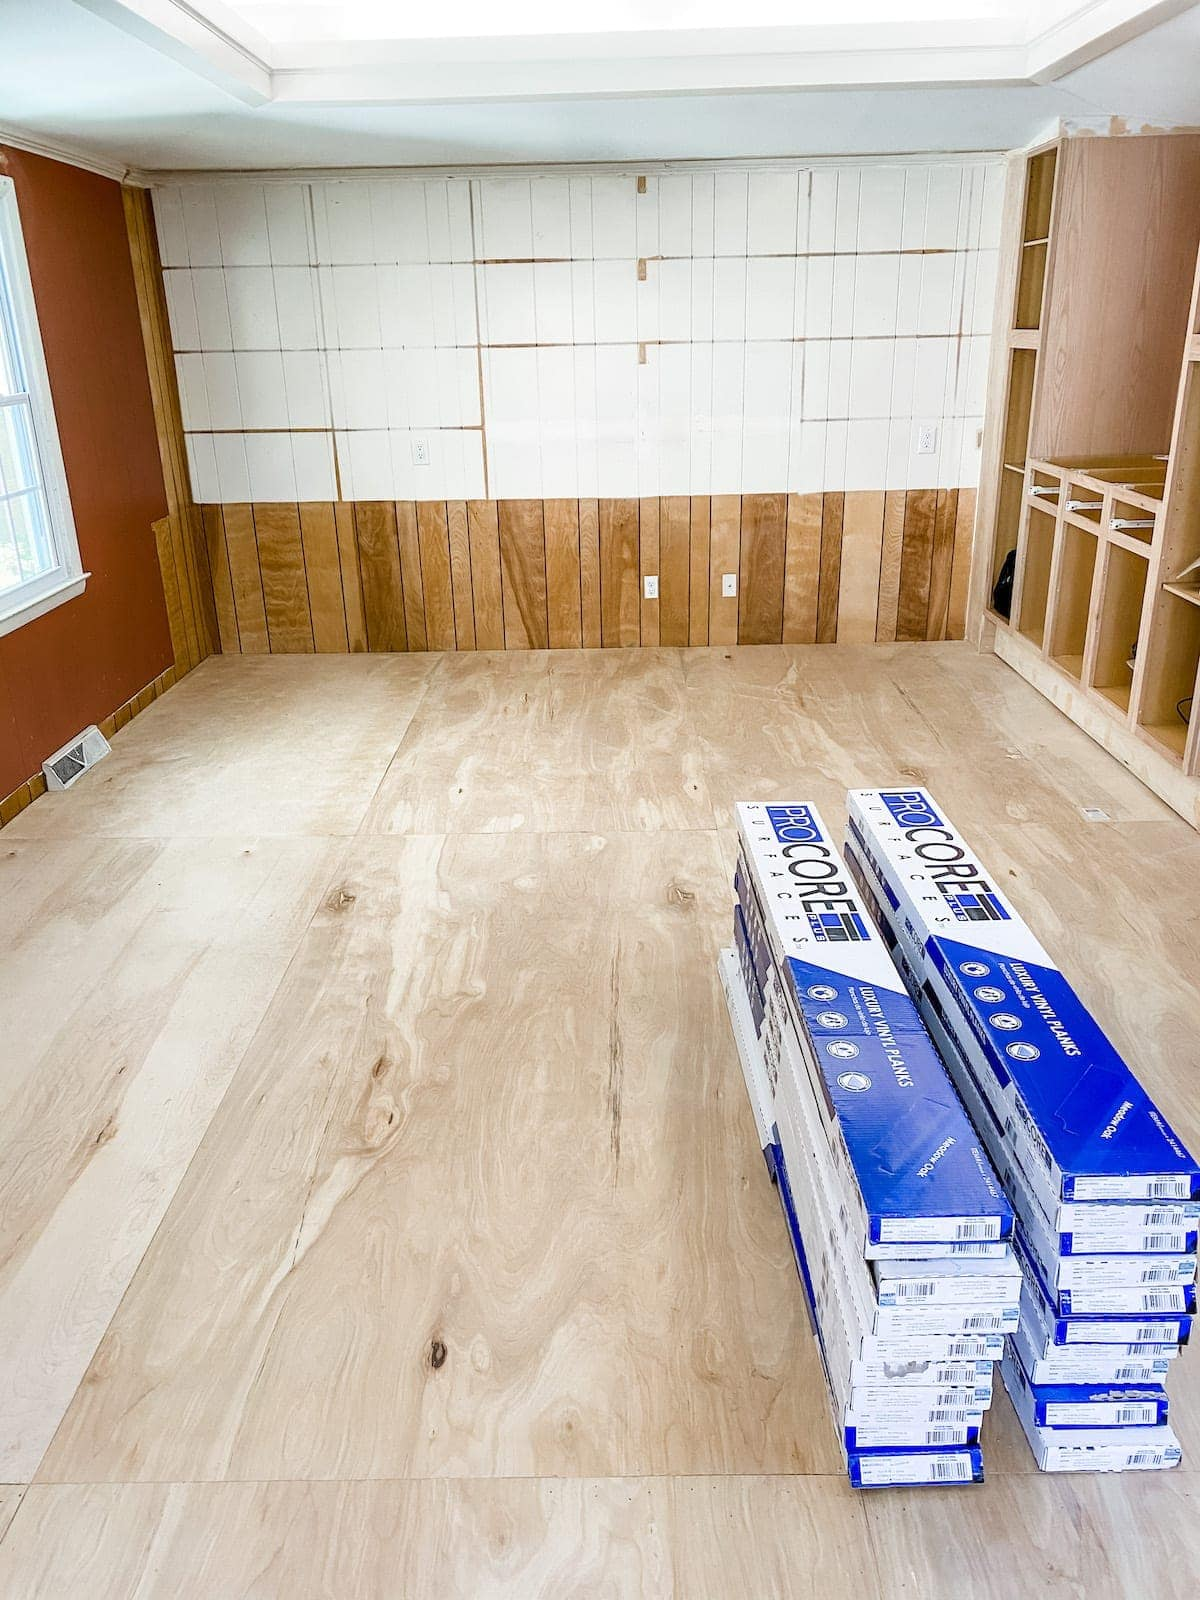 LVP flooring acclimating in a room